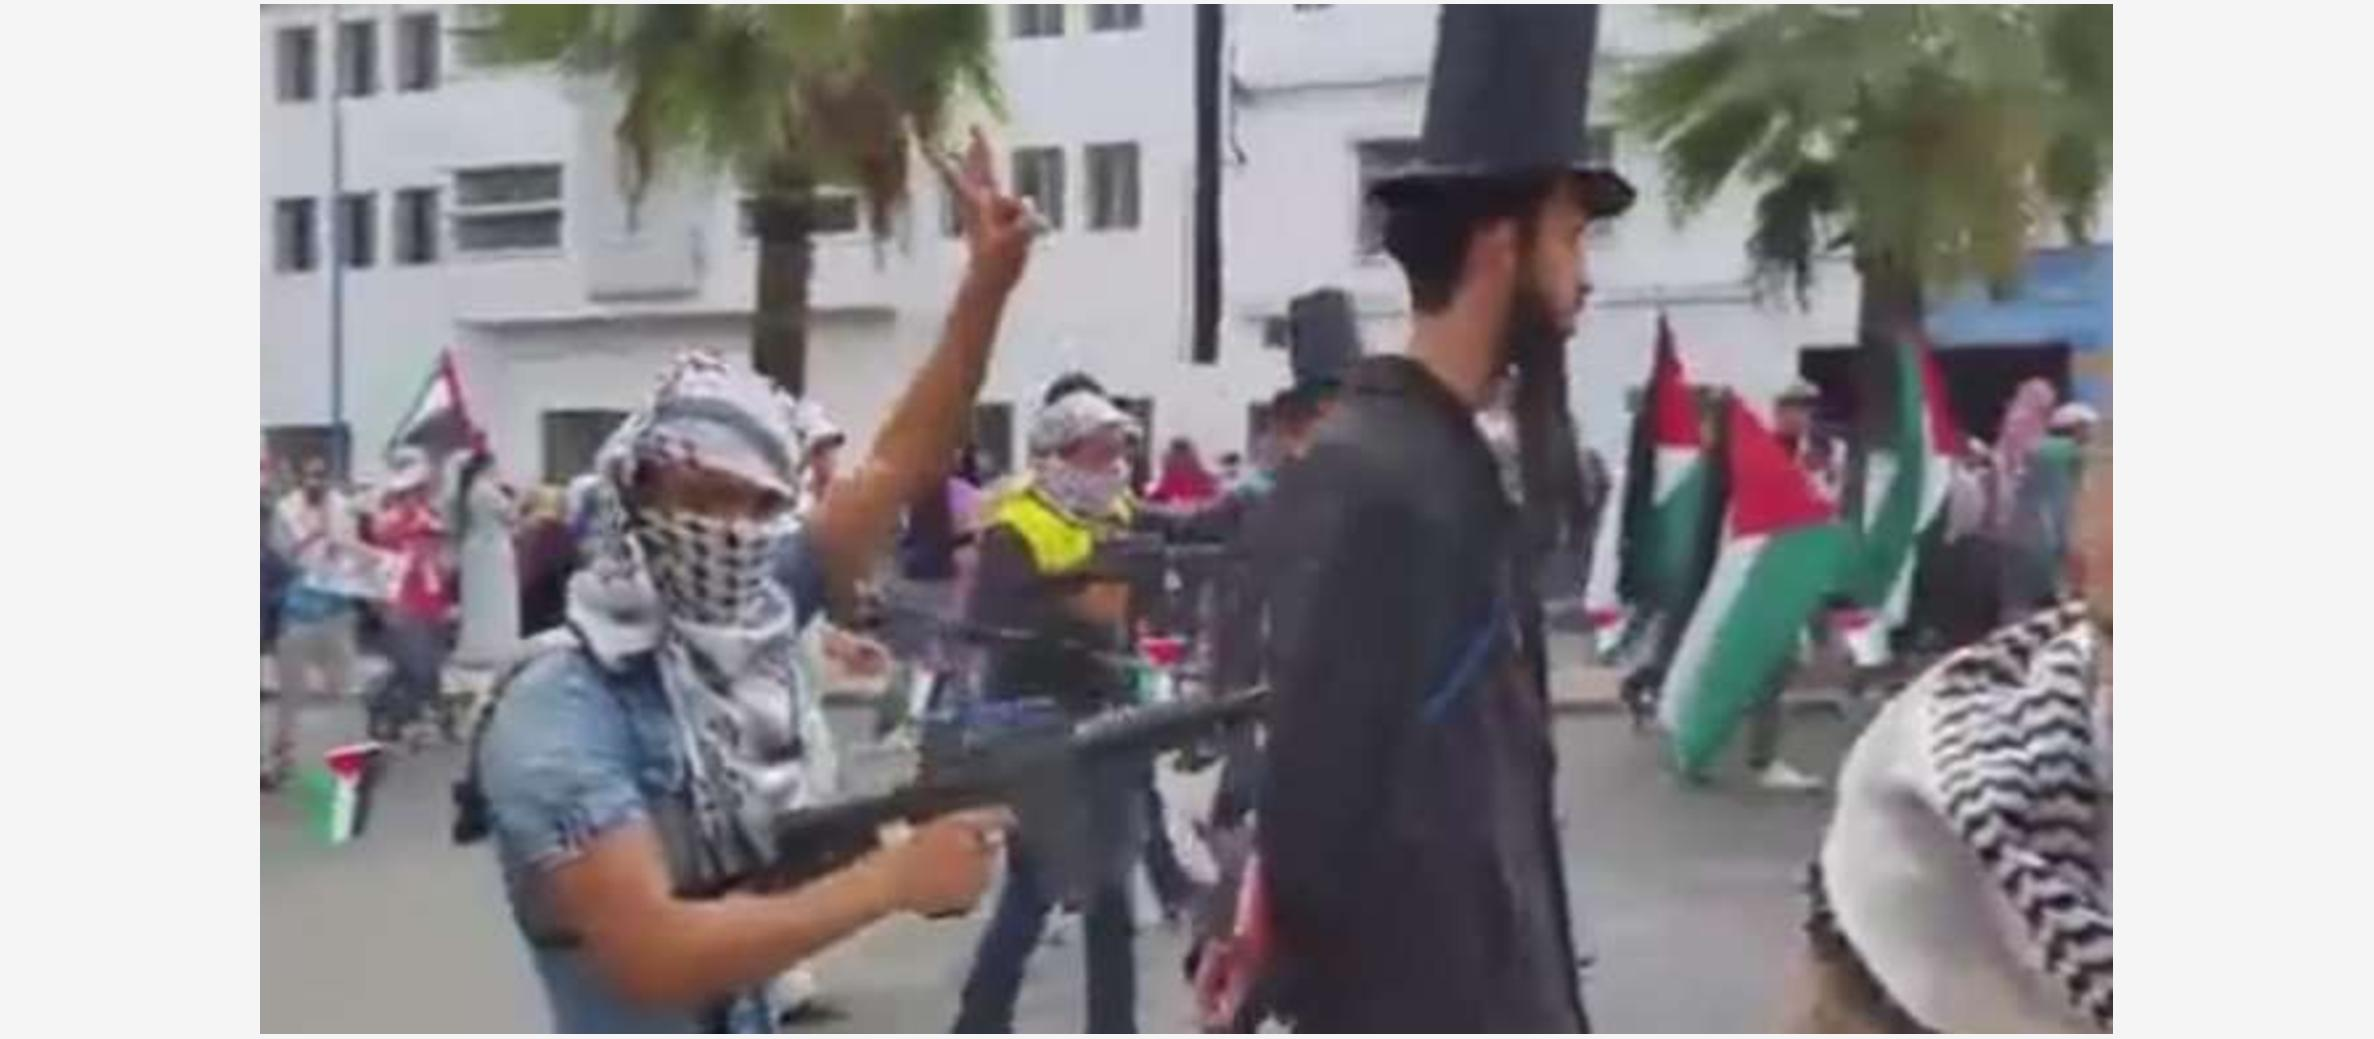 Demonstrators 'execute' fake ultra-Orthodox Jews at pro-Palestinian protest in Morocco